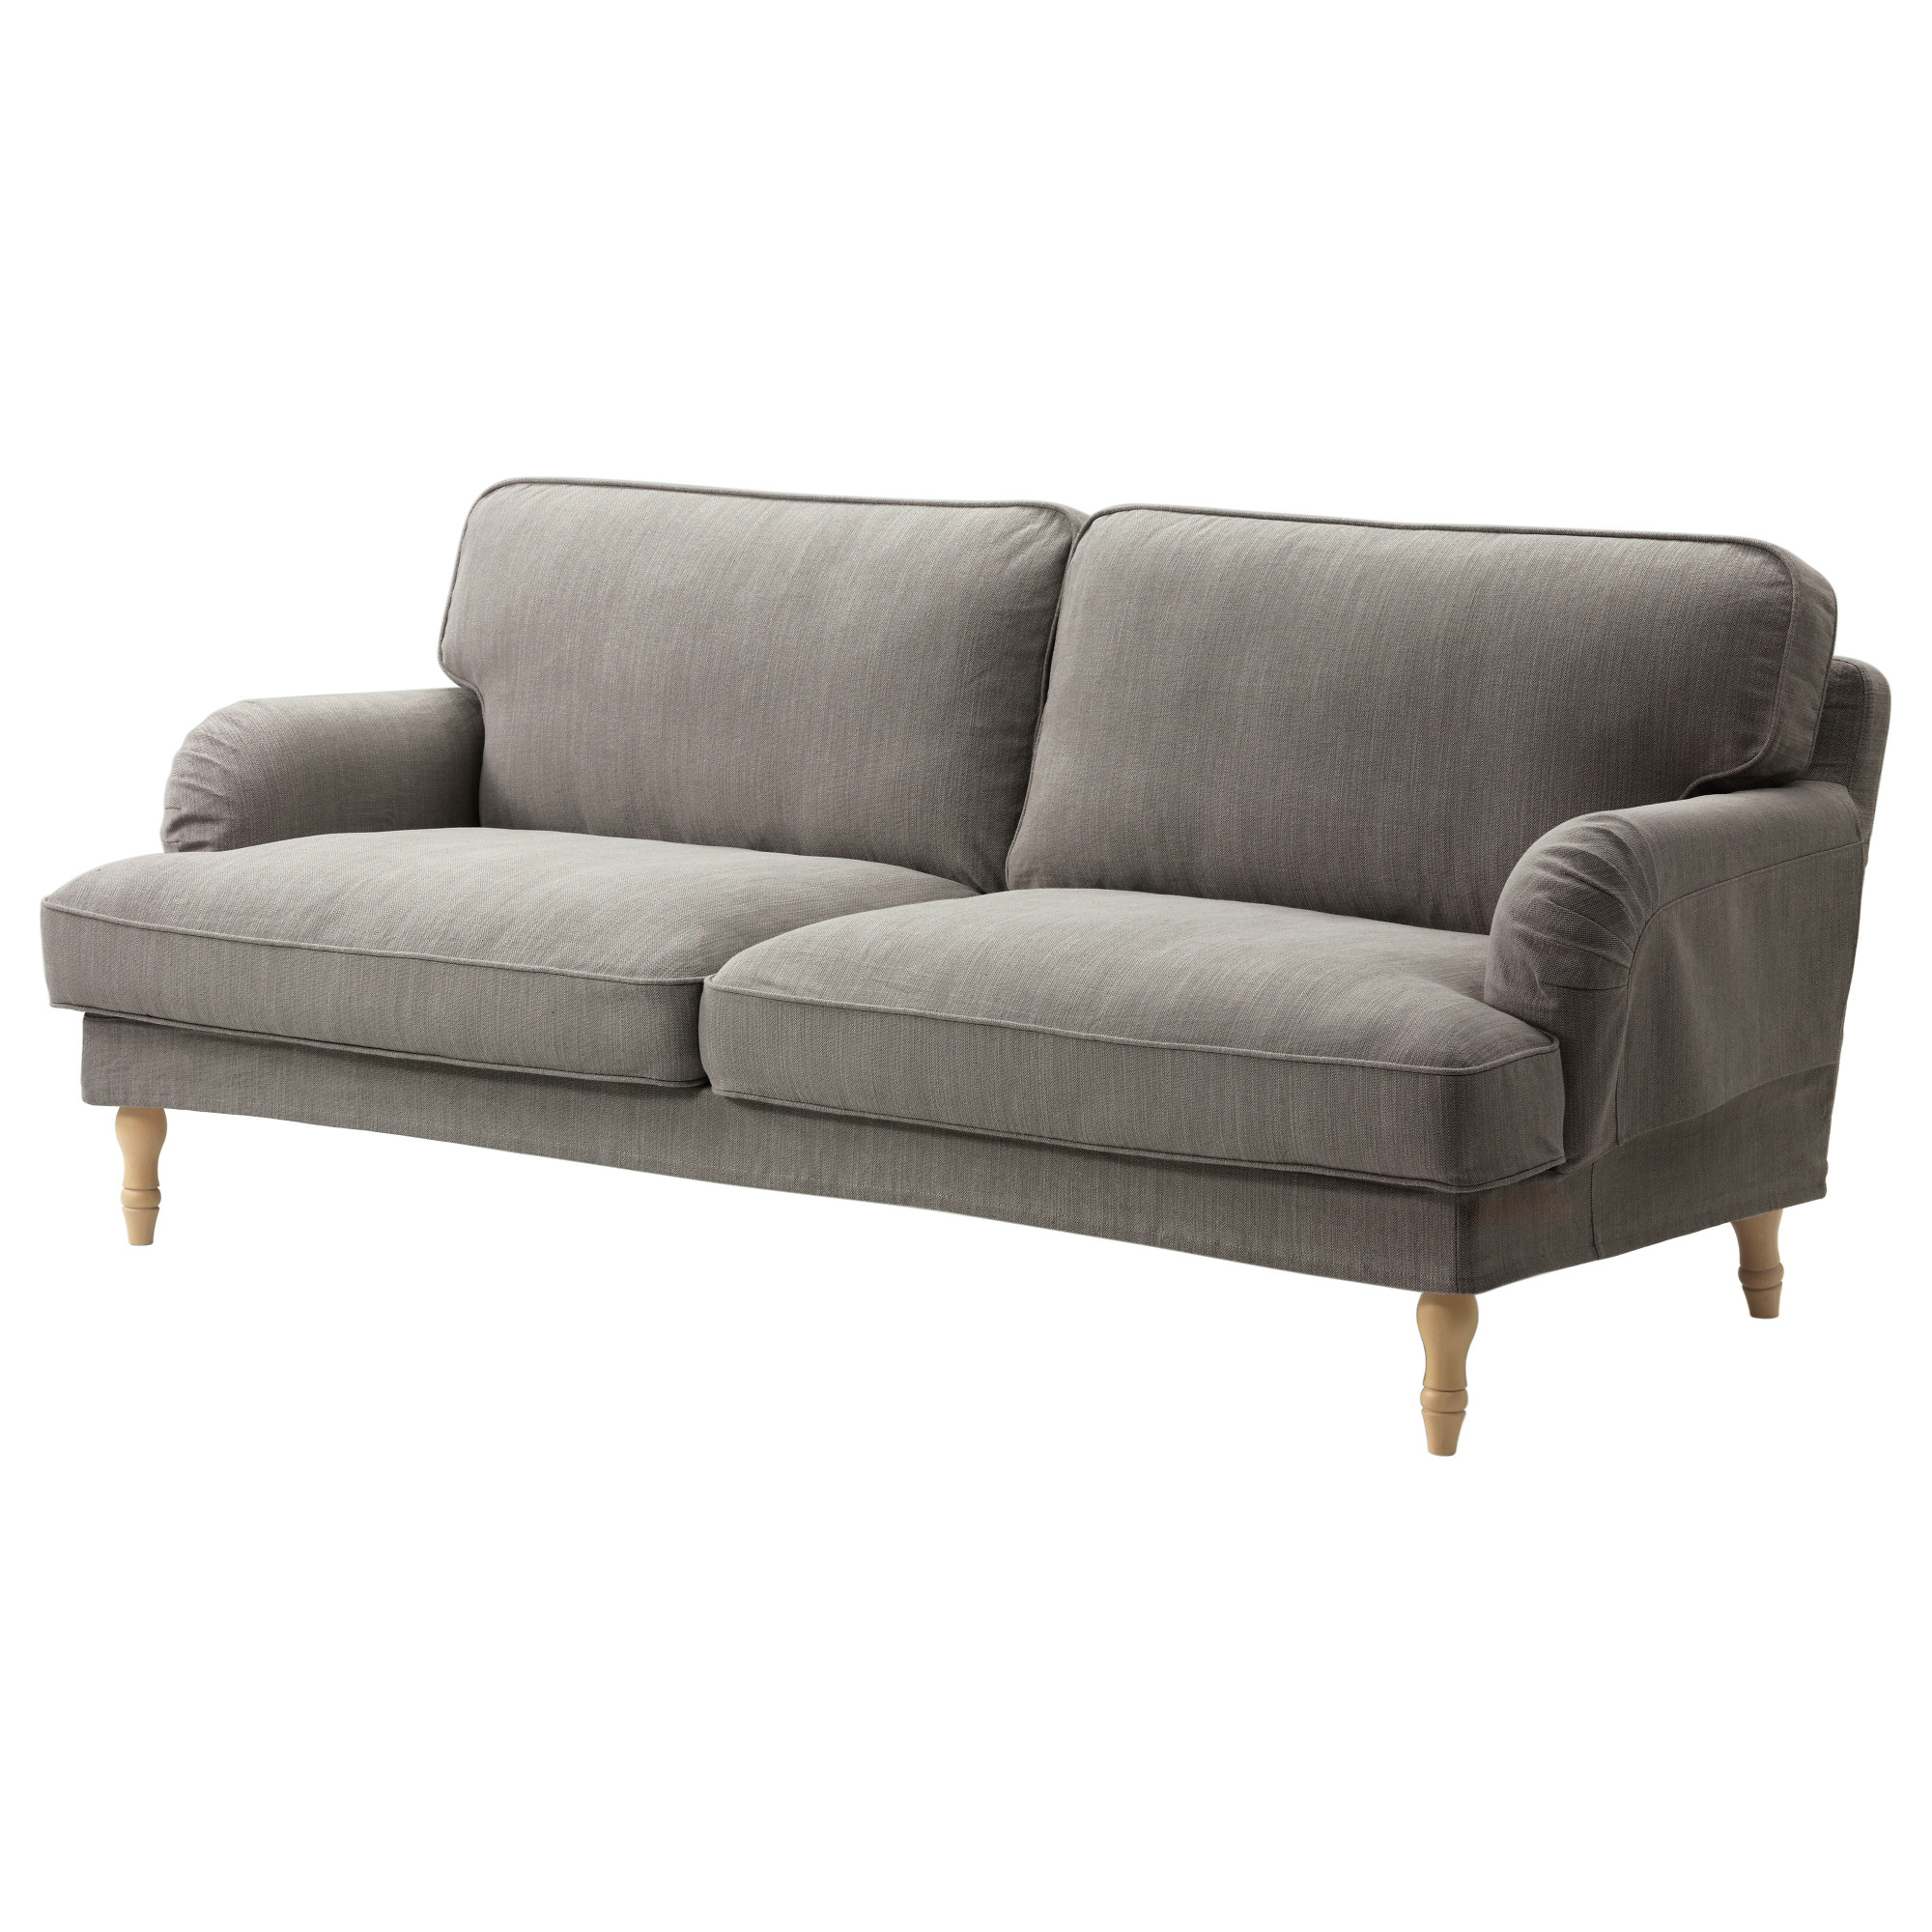 Bettsofa ikea  STOCKSUND Sofa - Nolhaga gray-beige, light brown - IKEA